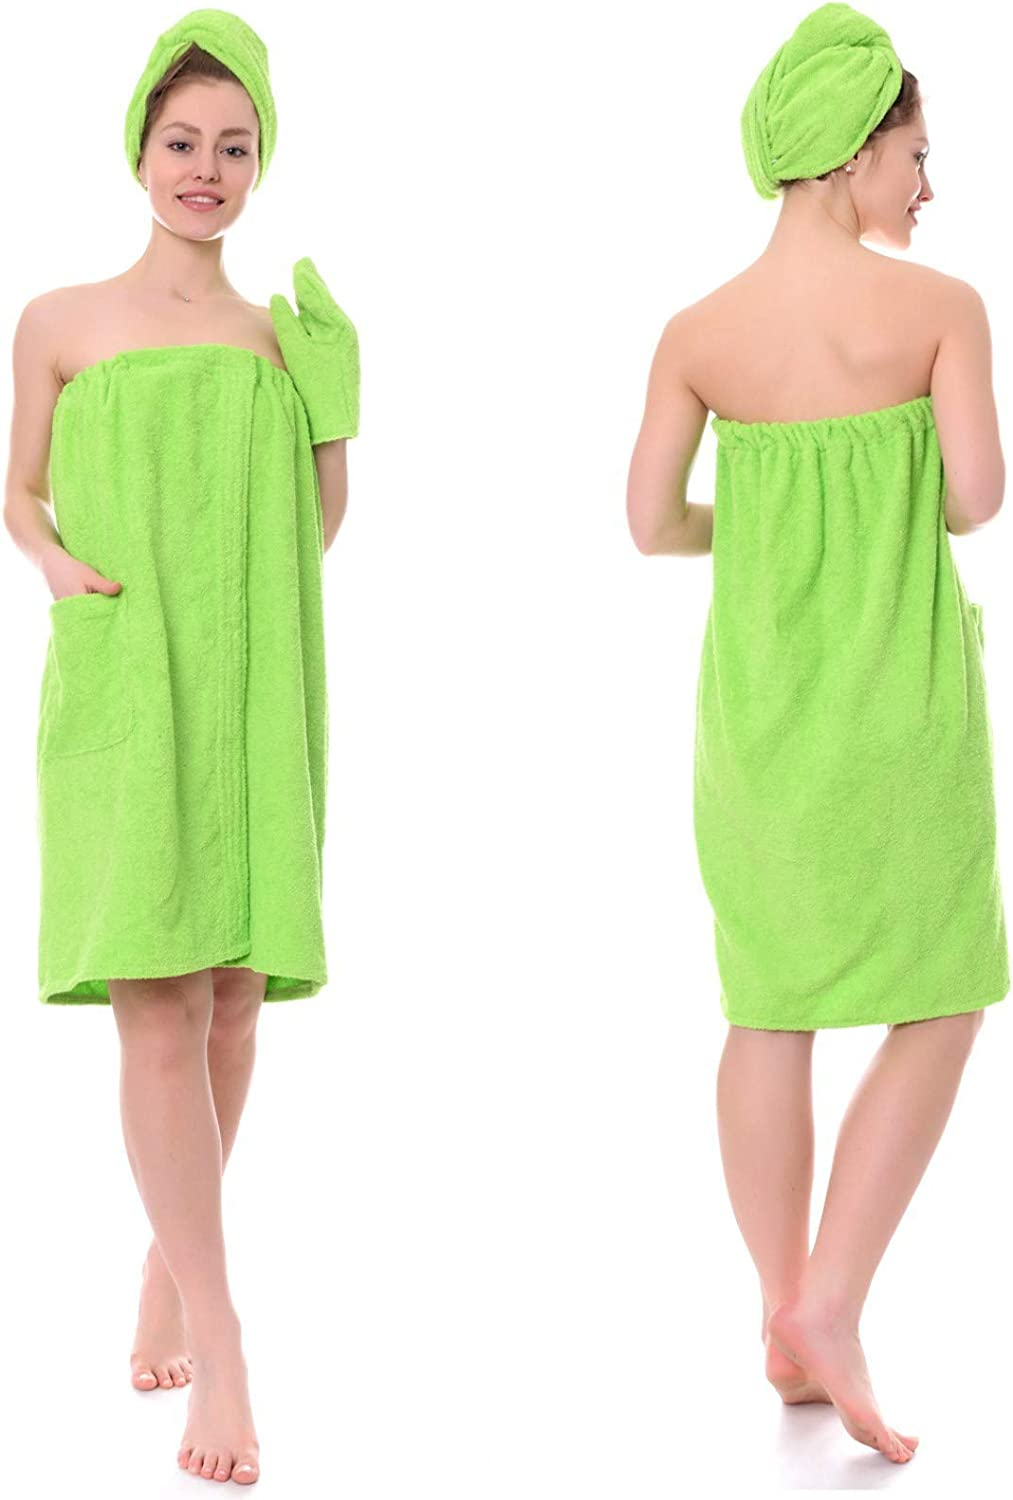 Sauna and Spa Set for Classic Women Max 86% OFF Wrap Cloth Terry with Ha Green Towel